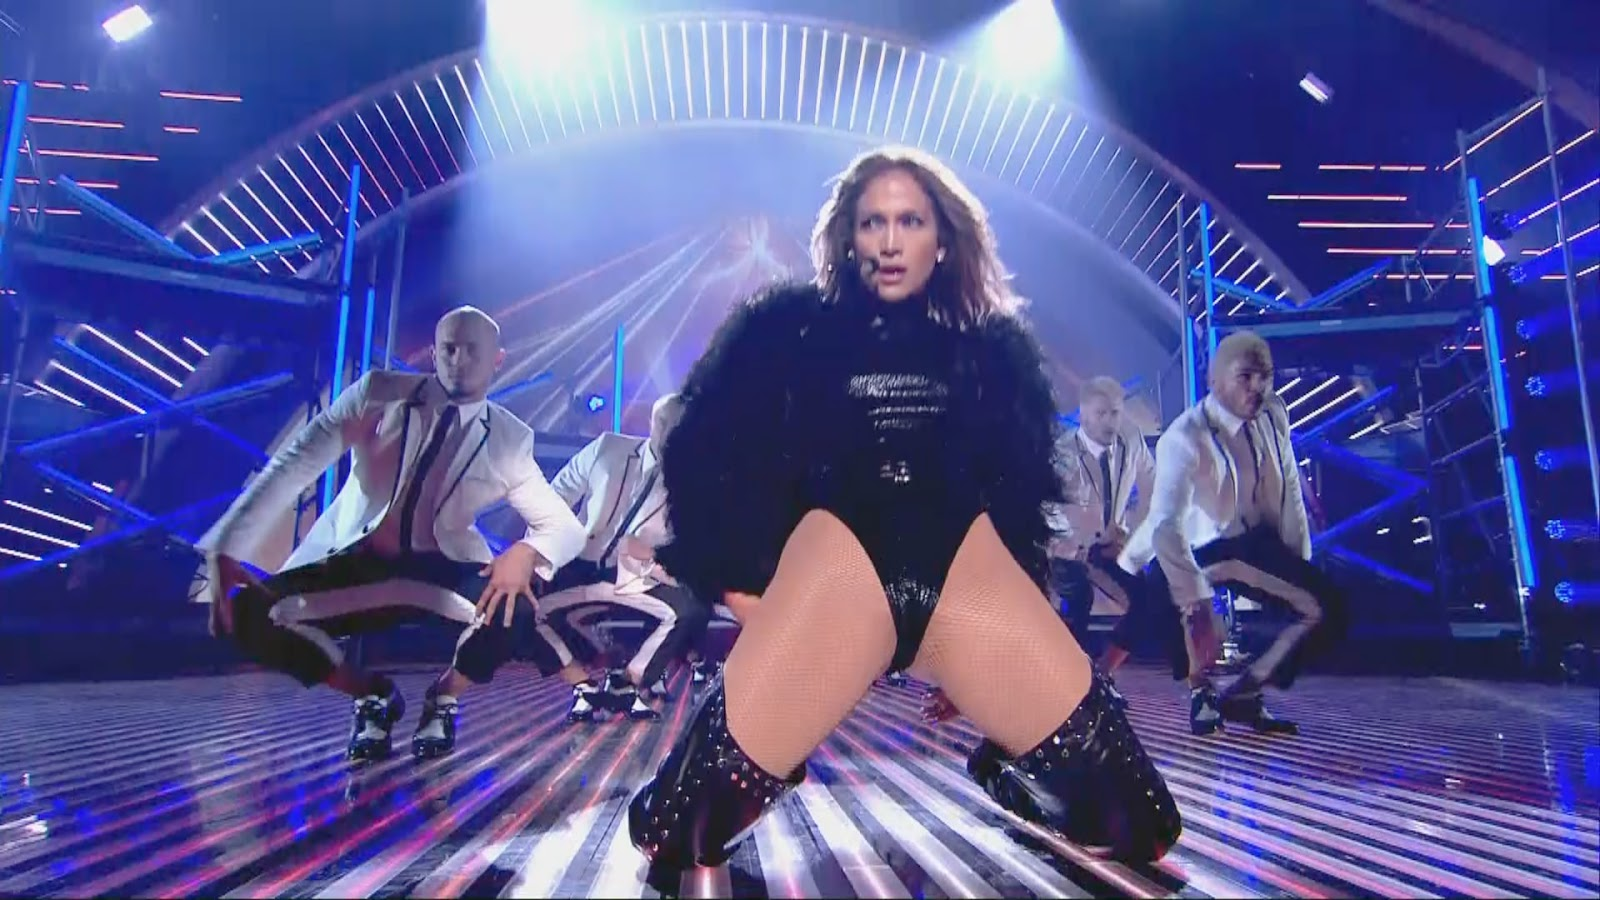 Live performance music videos jennifer lopez live it up Where does jennifer lopez live